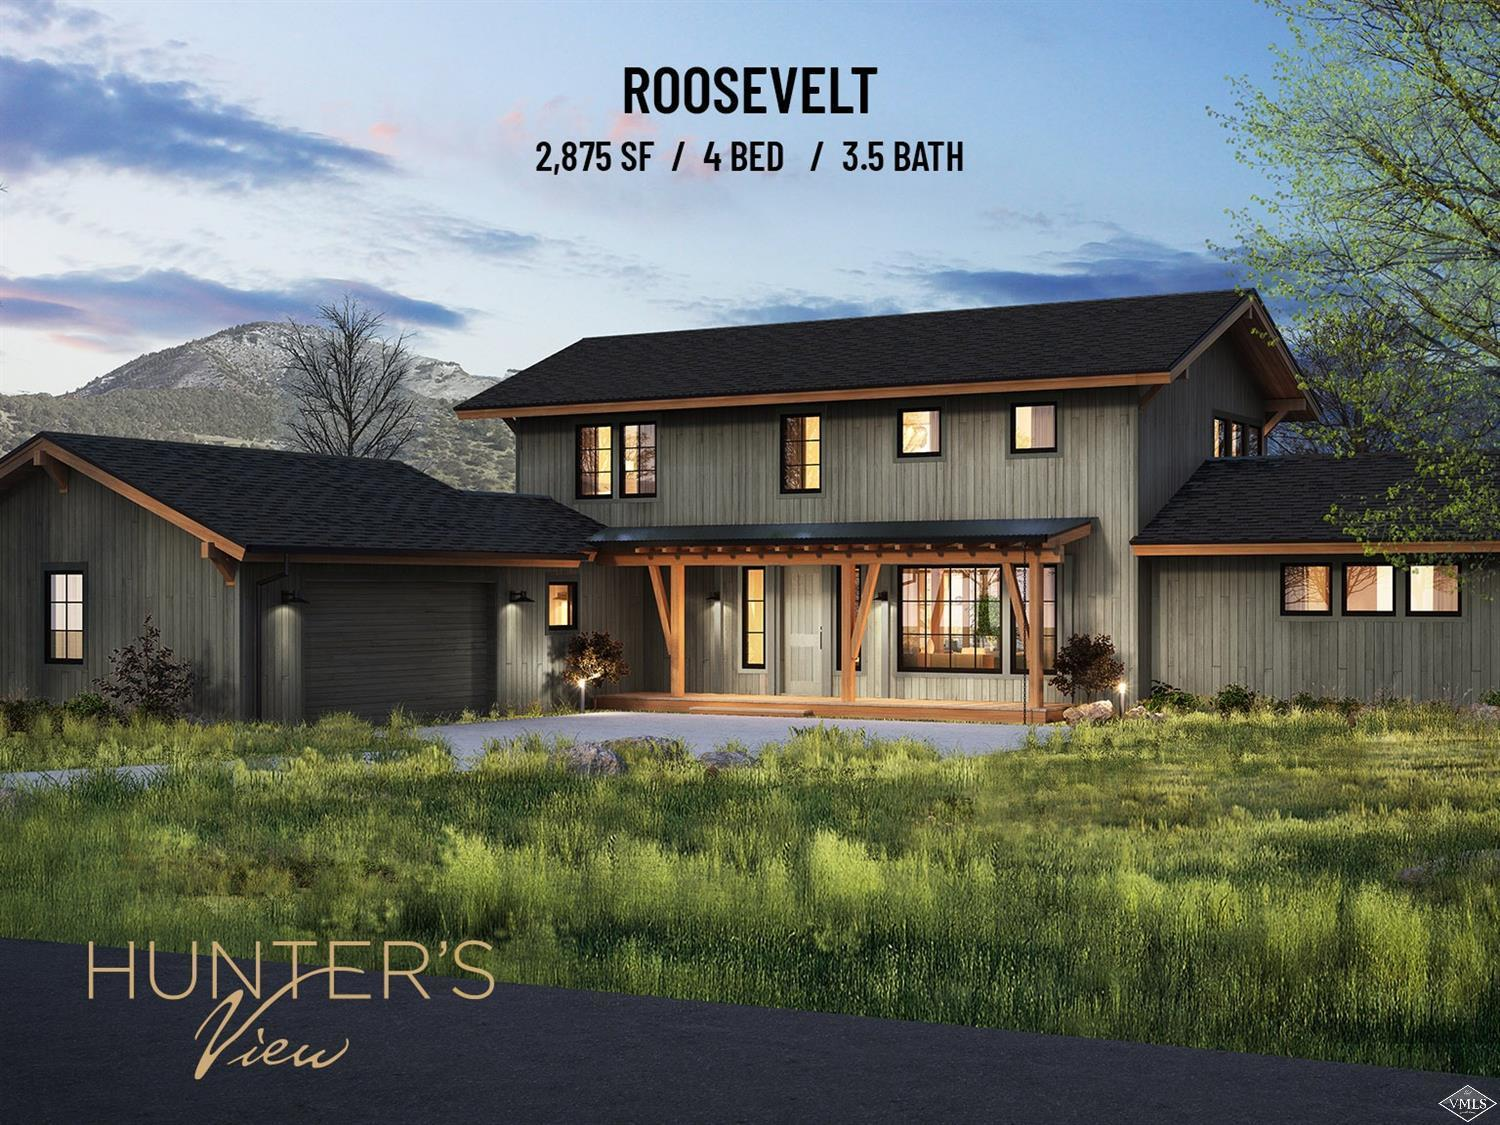 Starting Spring of 2020 - Roosevelt Model - Hunter's View Residences - Nestled on 81 acres, surrounded by pristine wilderness, Hunter's View is Frost Creek's newest real estate offering. Phase 1 (15 homes out of 44) are thoughtfully designed new construction homes, which is perfect combination of personalization and convenience. With 3 unique layouts and numerous additions to choose from, no two residences will be exactly the same.